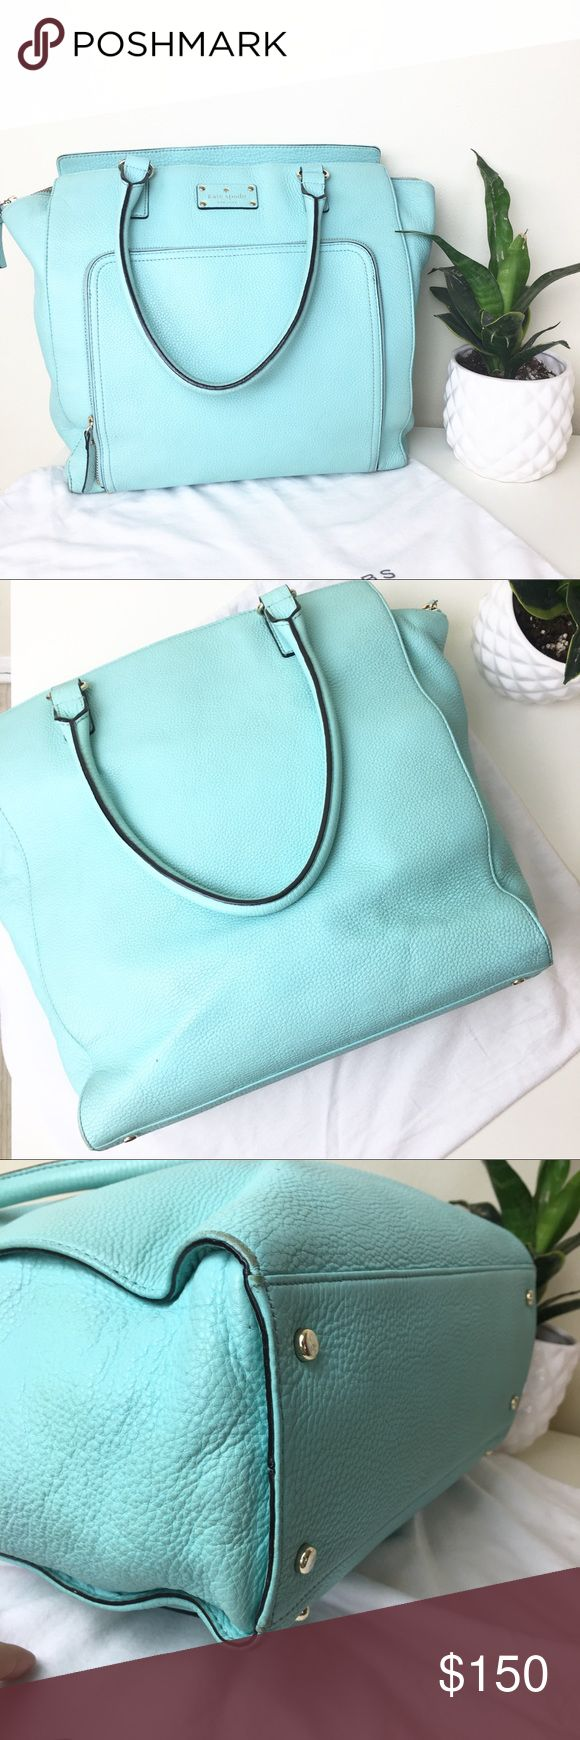 Kate spade baby blue/ mint purse I love this bag! Perfect fun color for summer! I use it for around 6 months as a diaper bag. shows normal signs of wear/corners and a faint marker spot in the inside Other than that it's en great condition very clean!  Reasonable Offers welcome! Open to trade for another purse. kate spade Bags Shoulder Bags